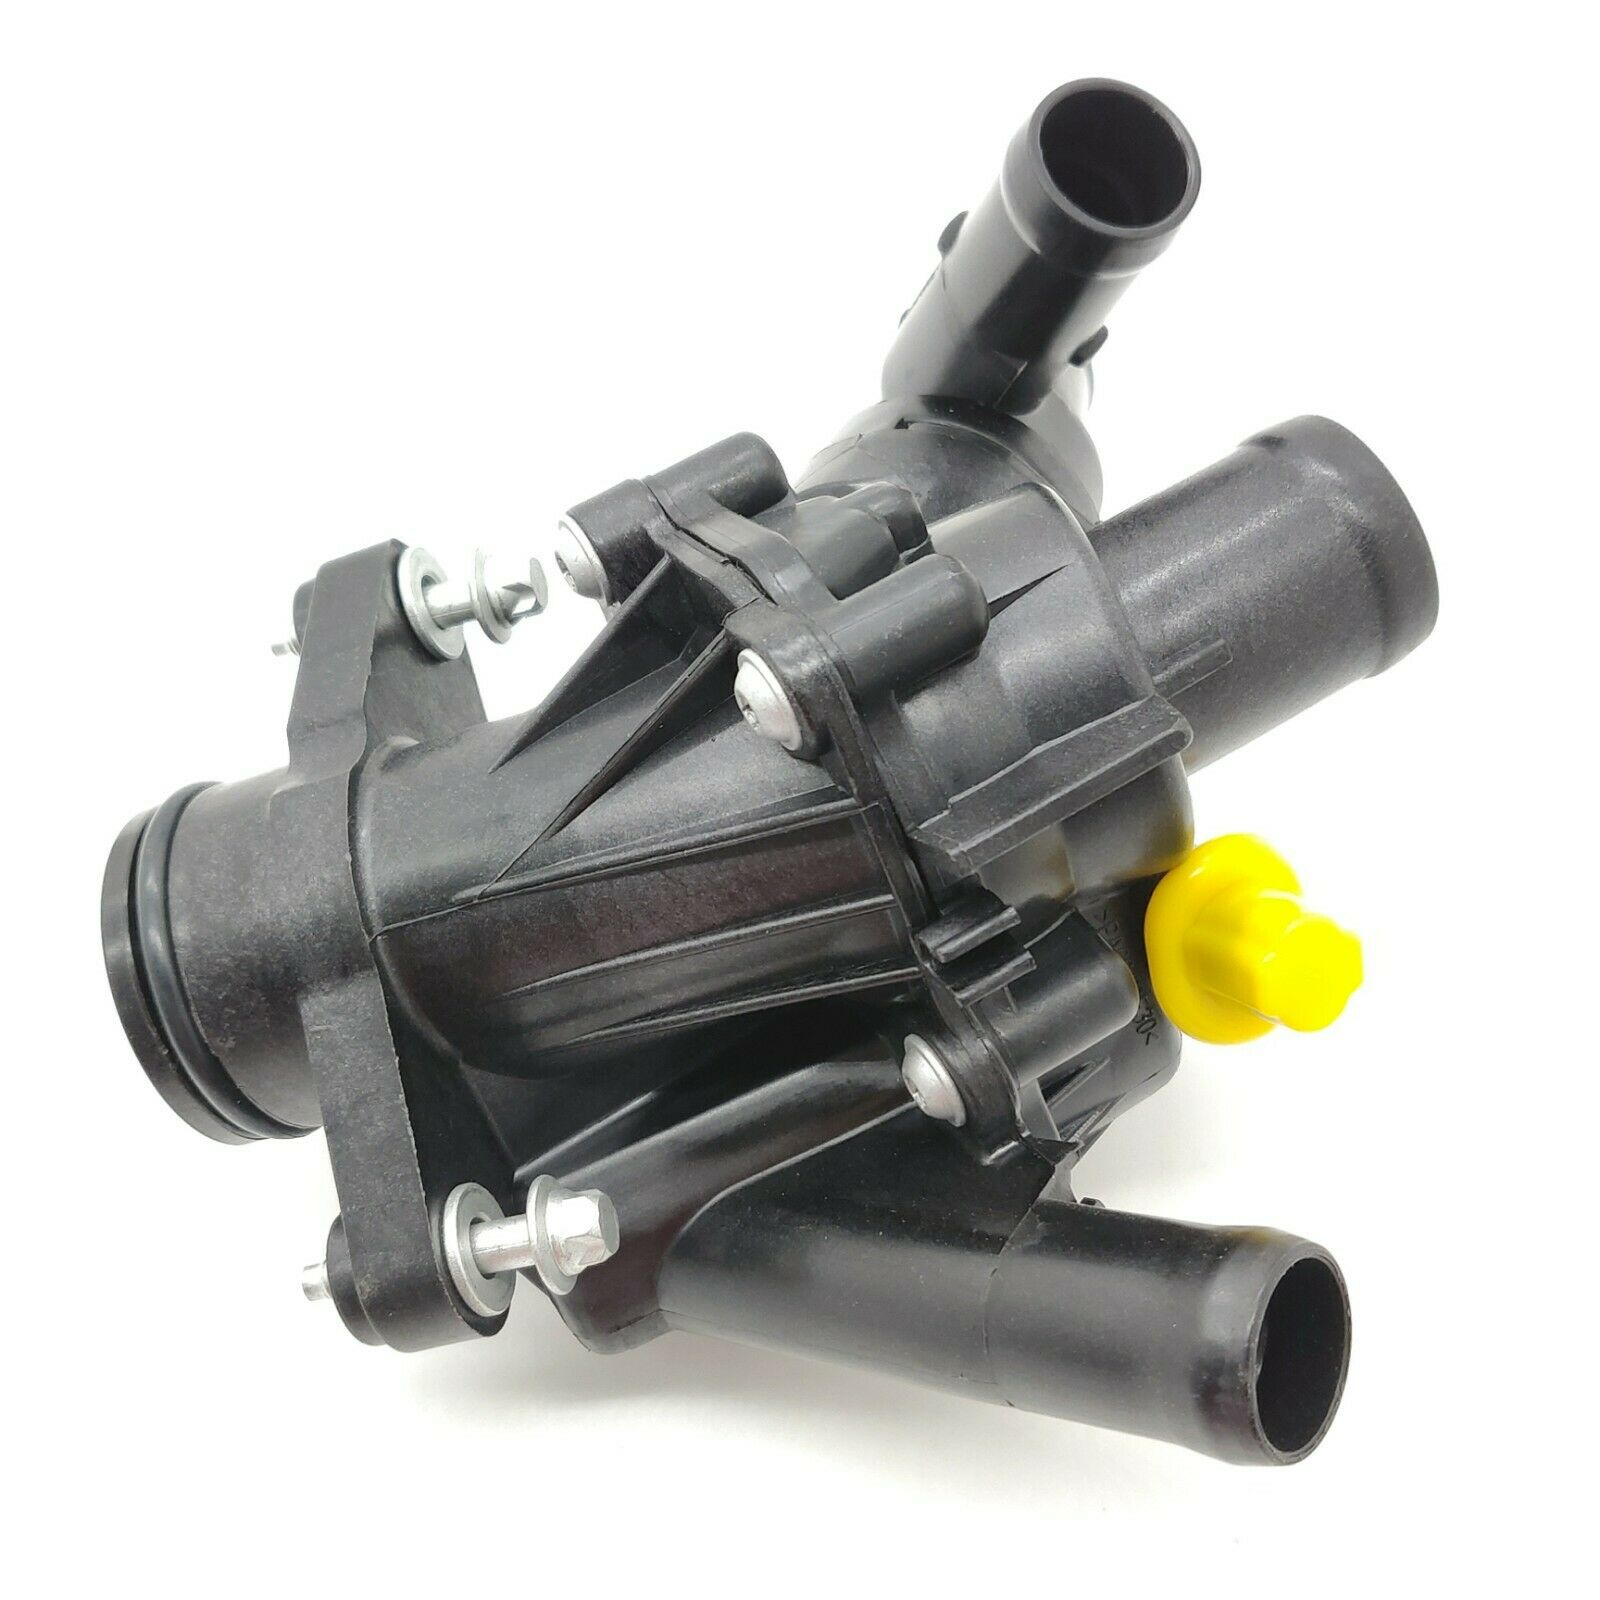 Engine Coolant Thermostat Housing For Mercedes Benz A180 A200 Cla180 Cla200 Cla250 Cla45 Amg Gla180 Gla200 Gla250 Gla45 Amg Oil Coolers Aliexpress